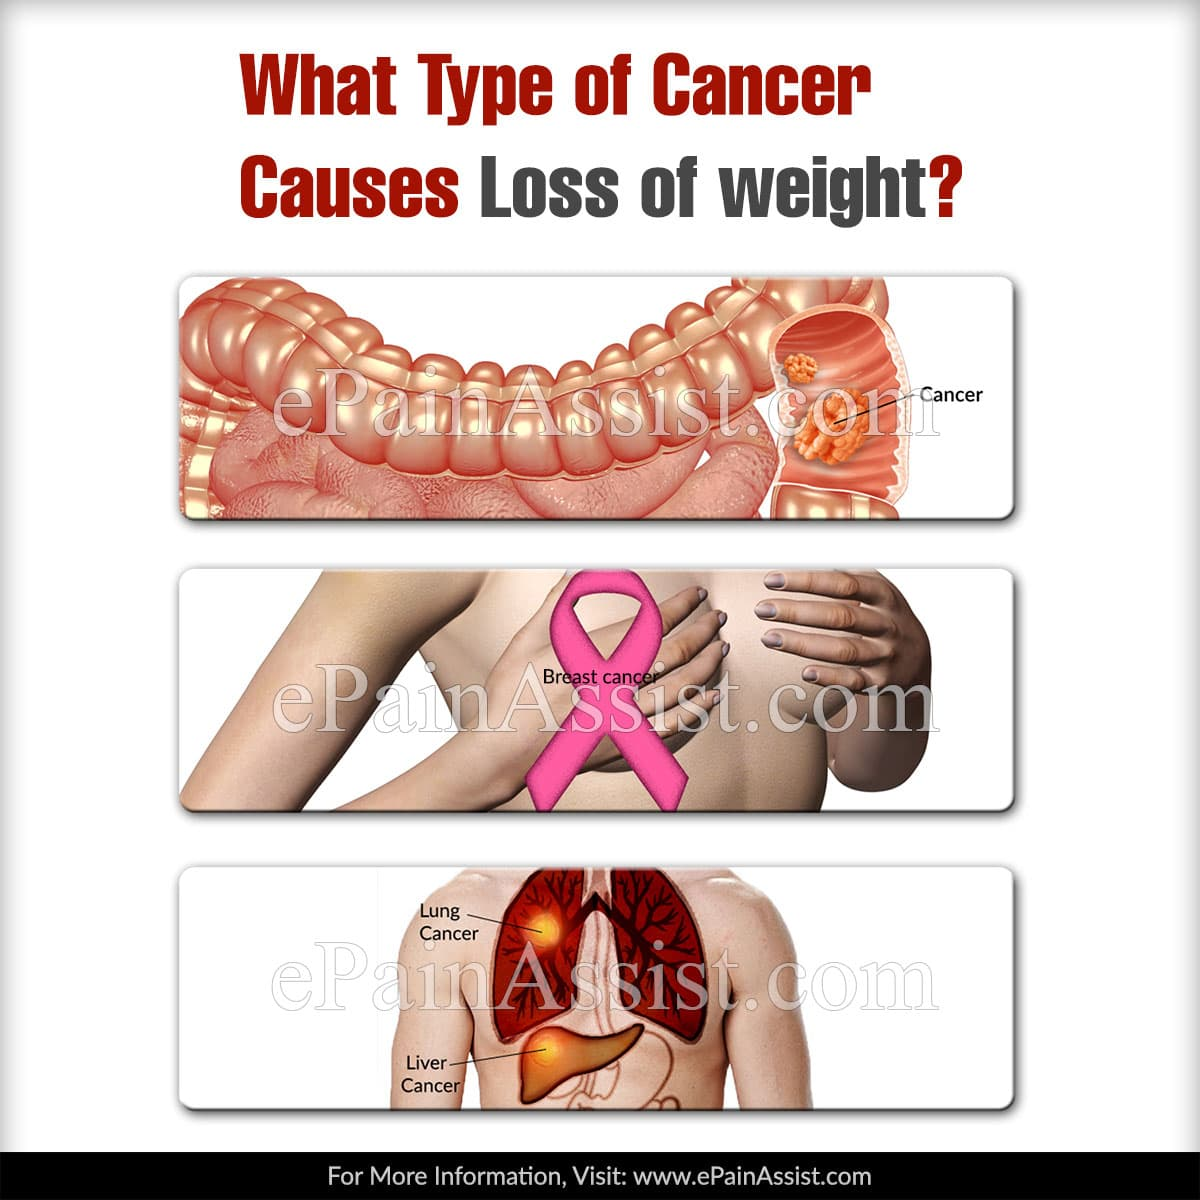 What Type of Cancer Causes Loss of Weight?